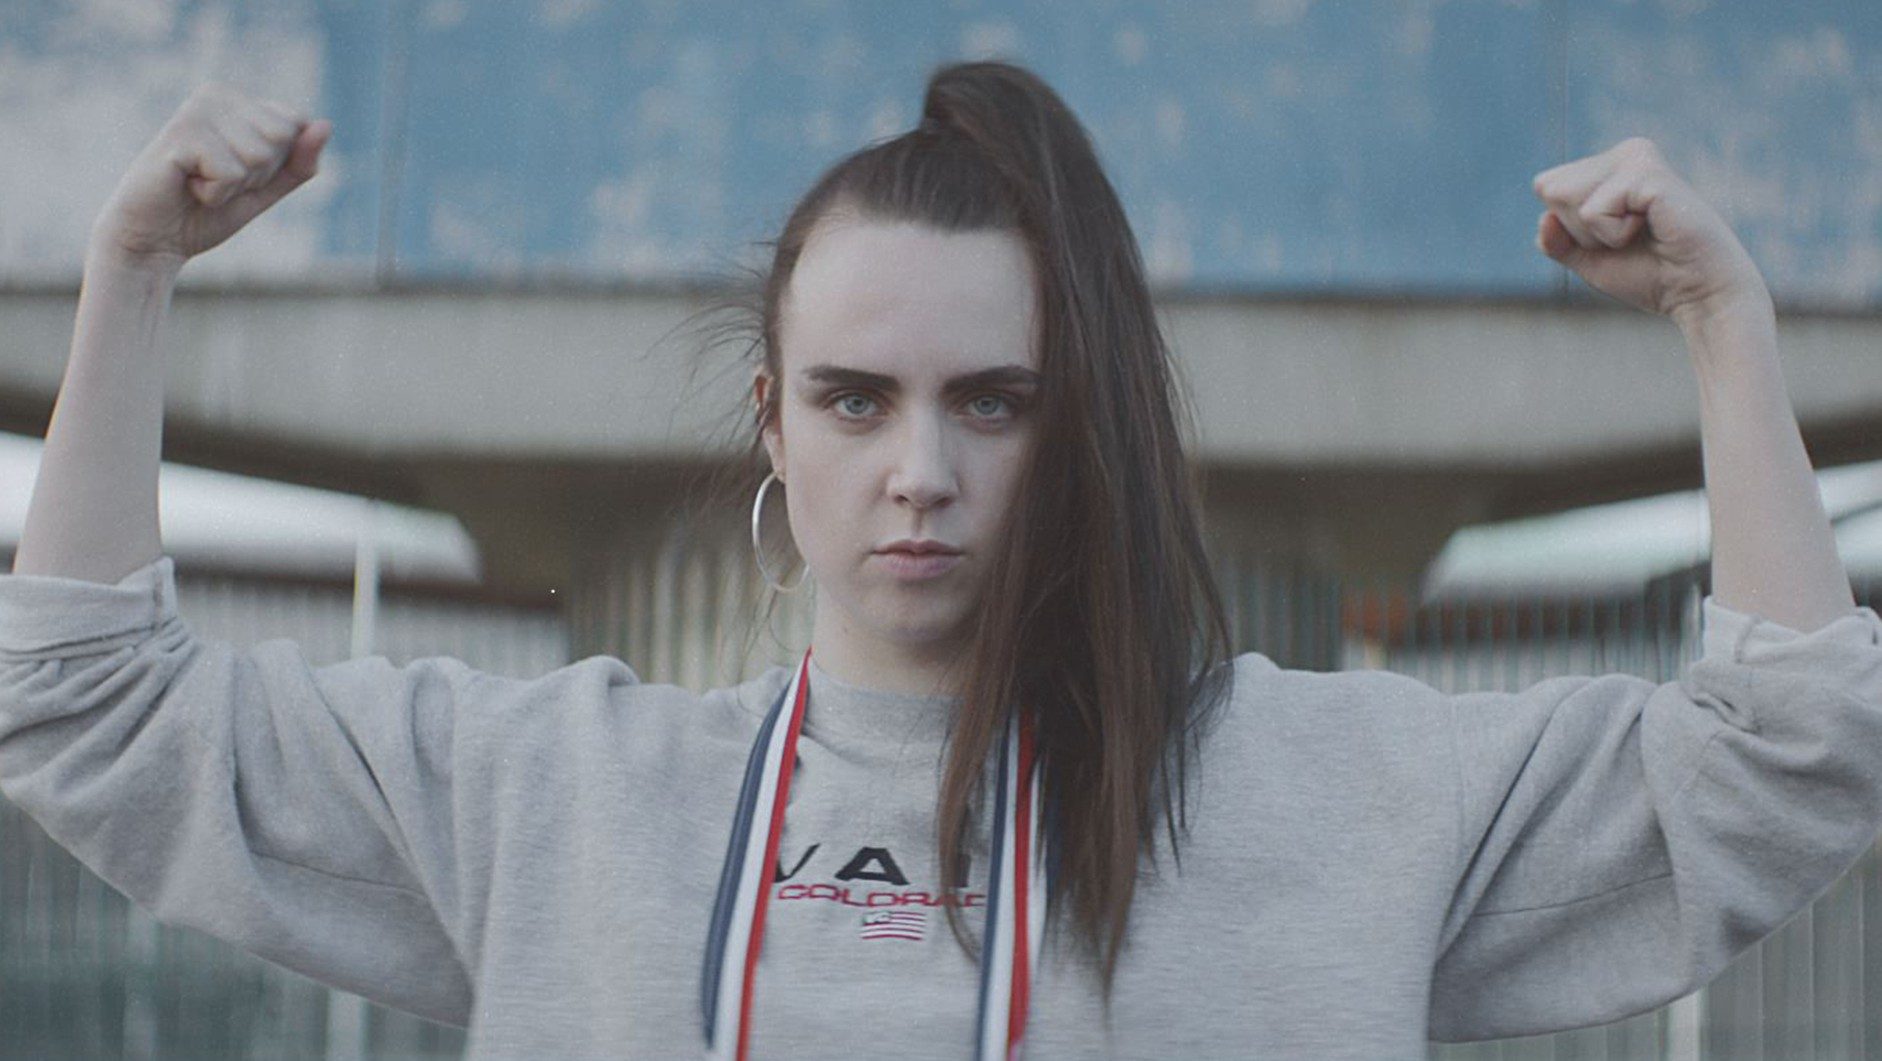 mø, walk this way